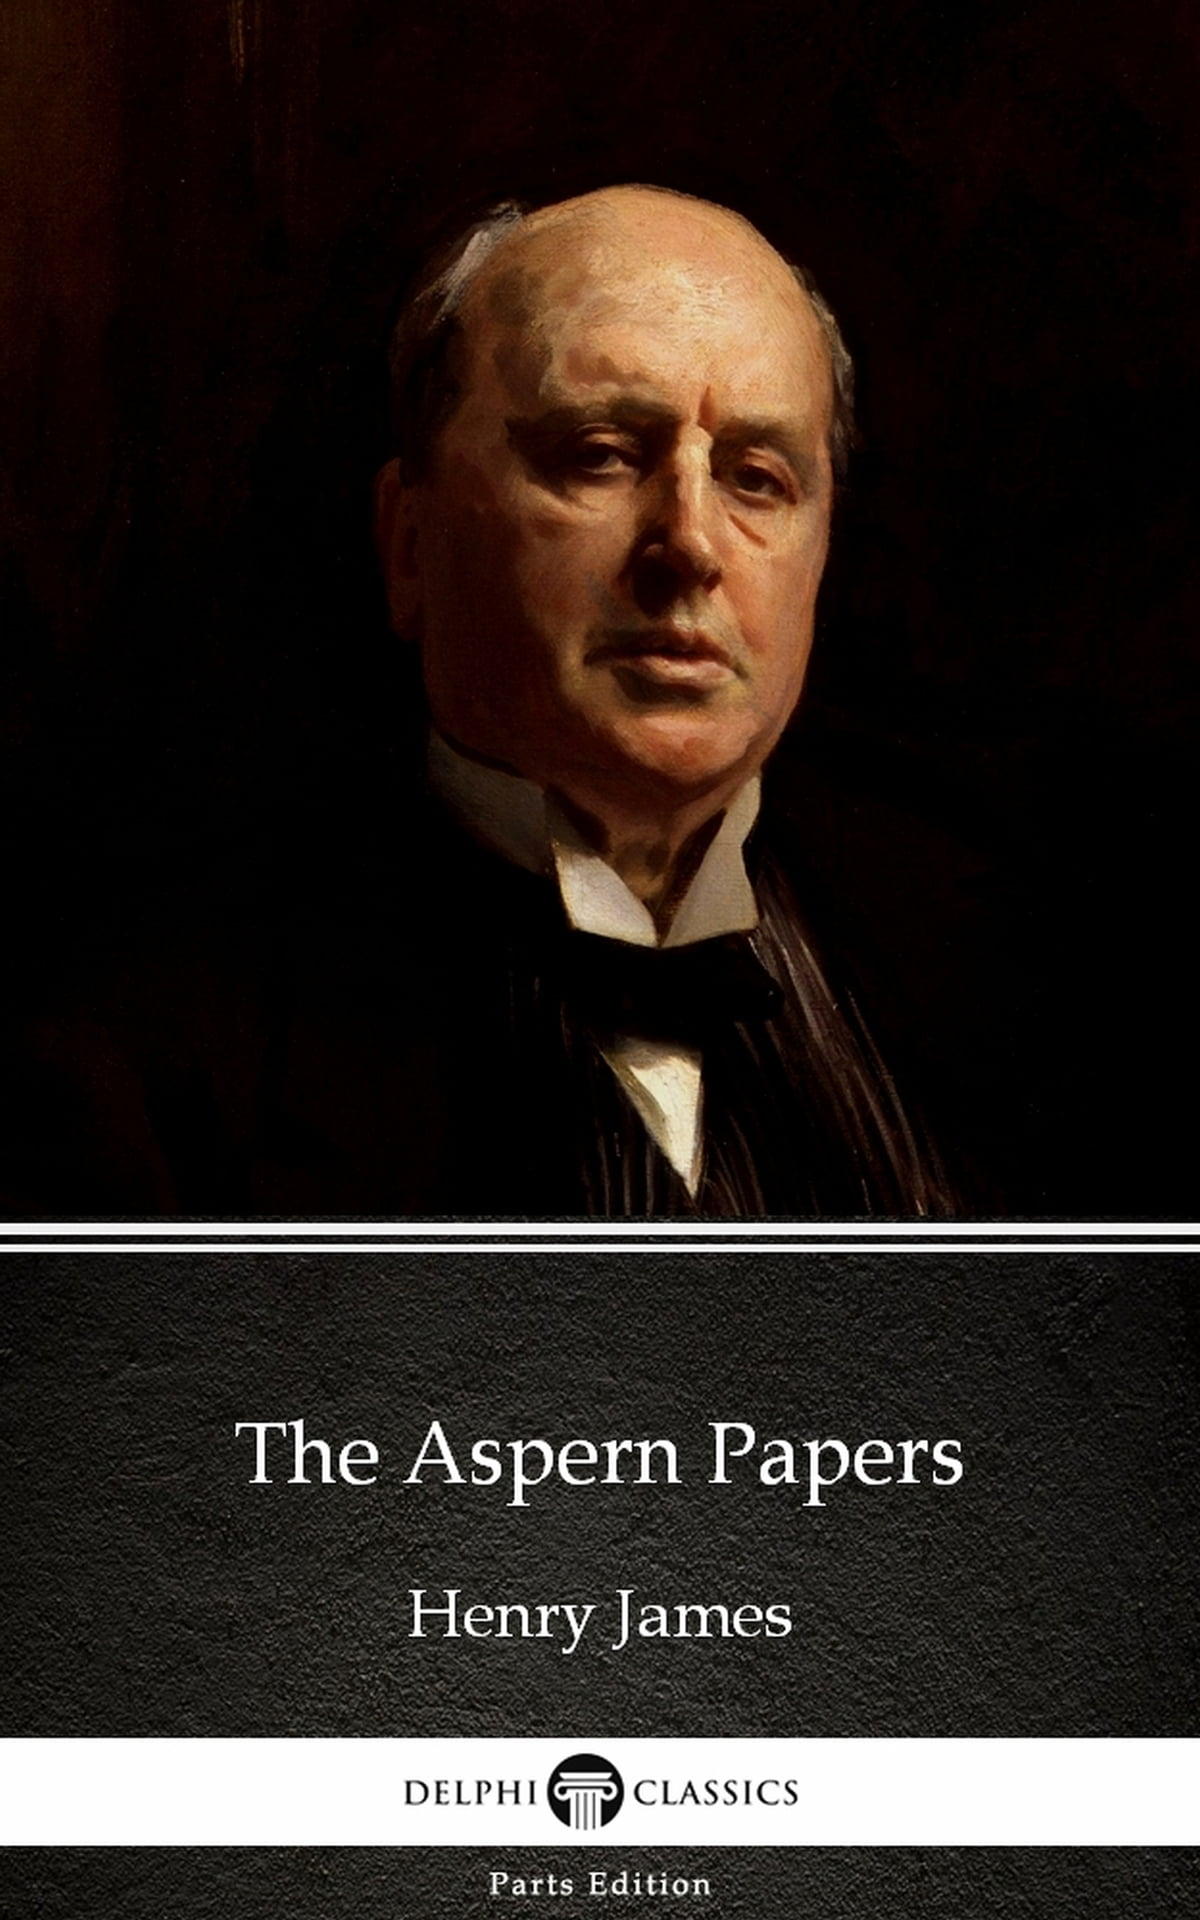 Henry James The Aspern Papers By Henry James Illustrated Ebook By Henry James Rakuten Kobo